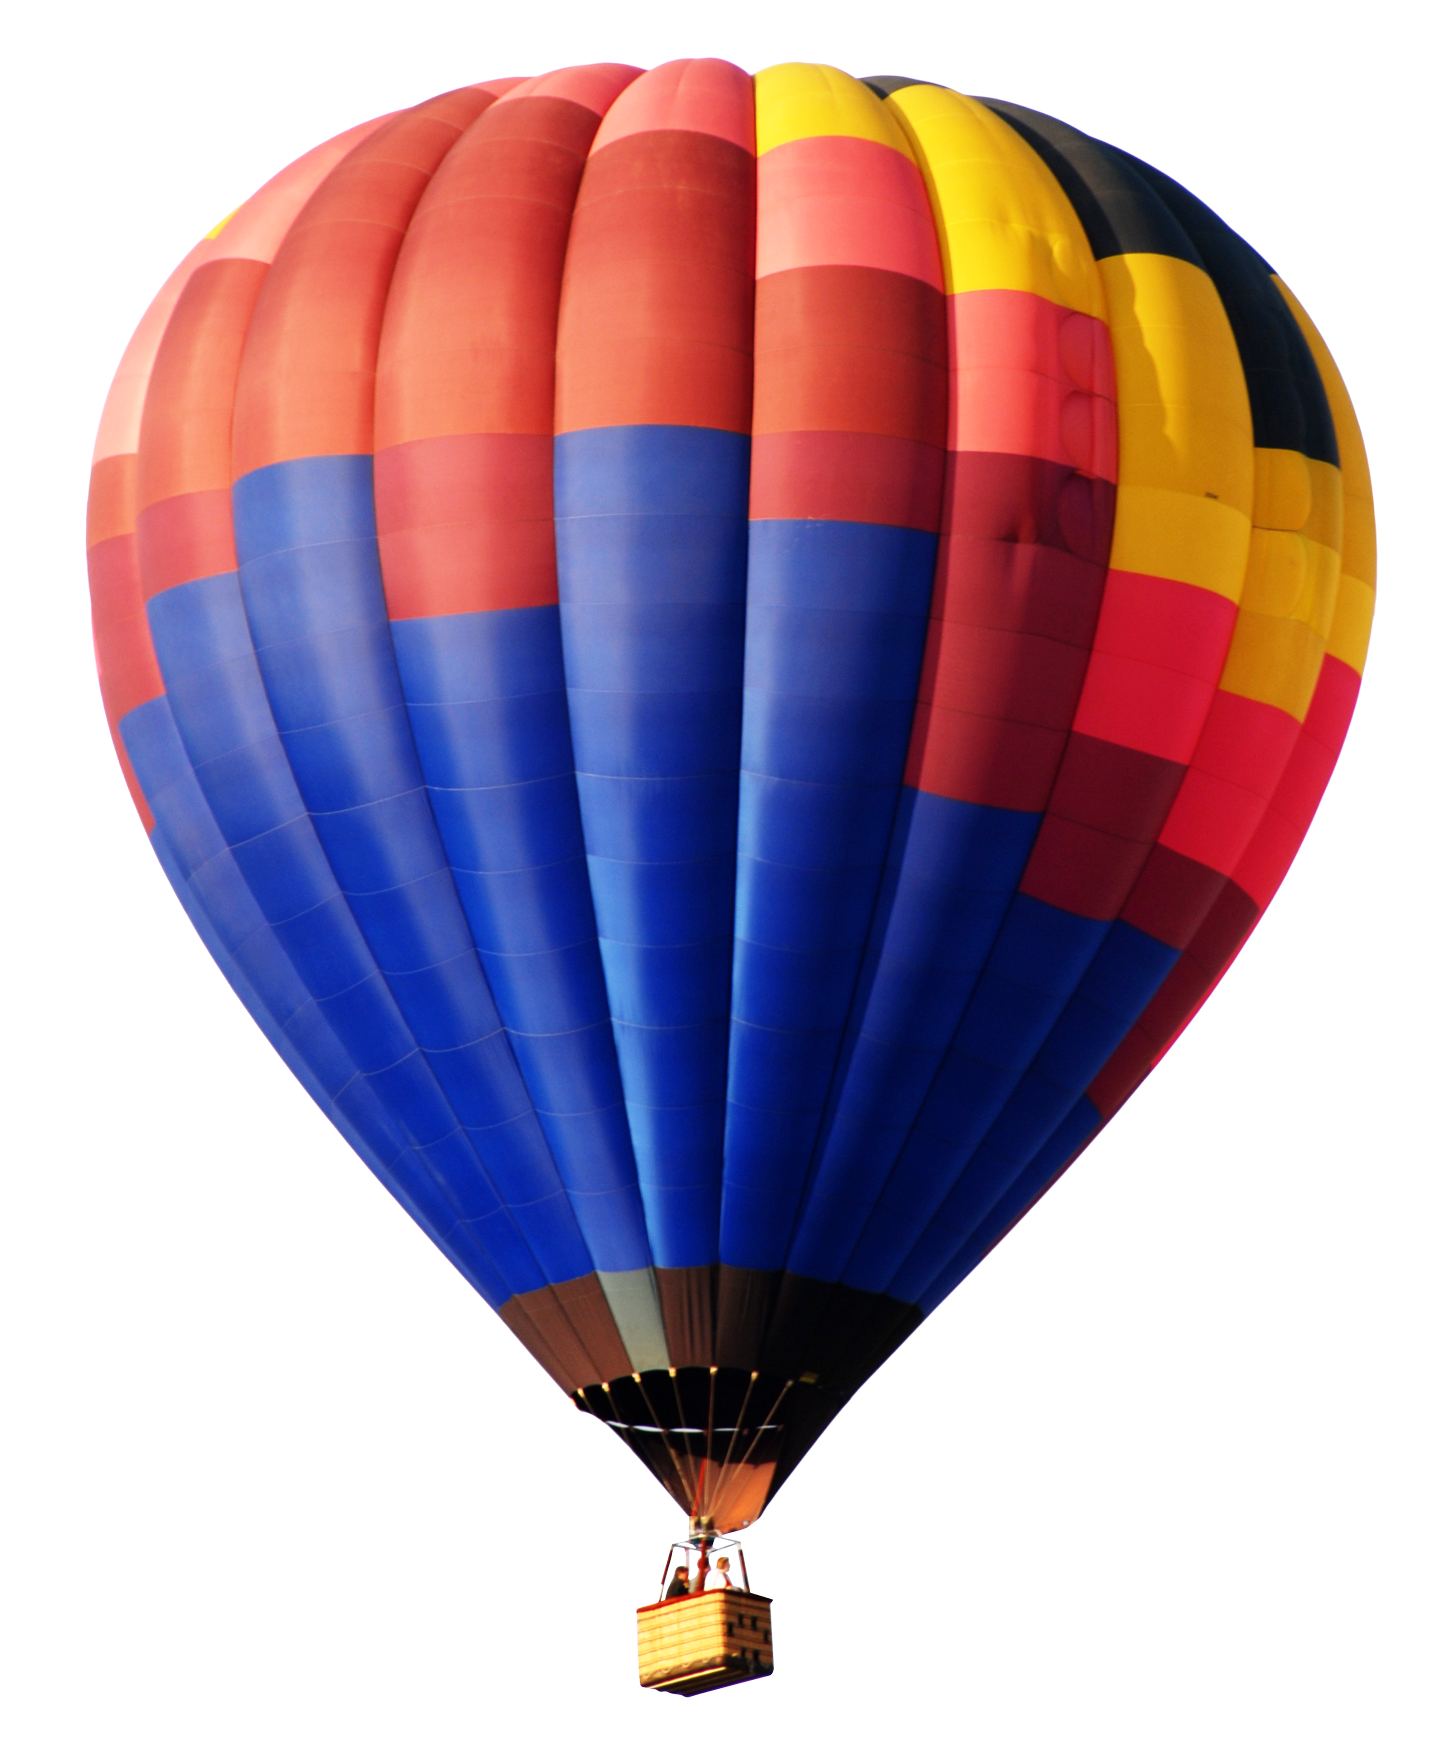 Hot Air Balloon PNG Image